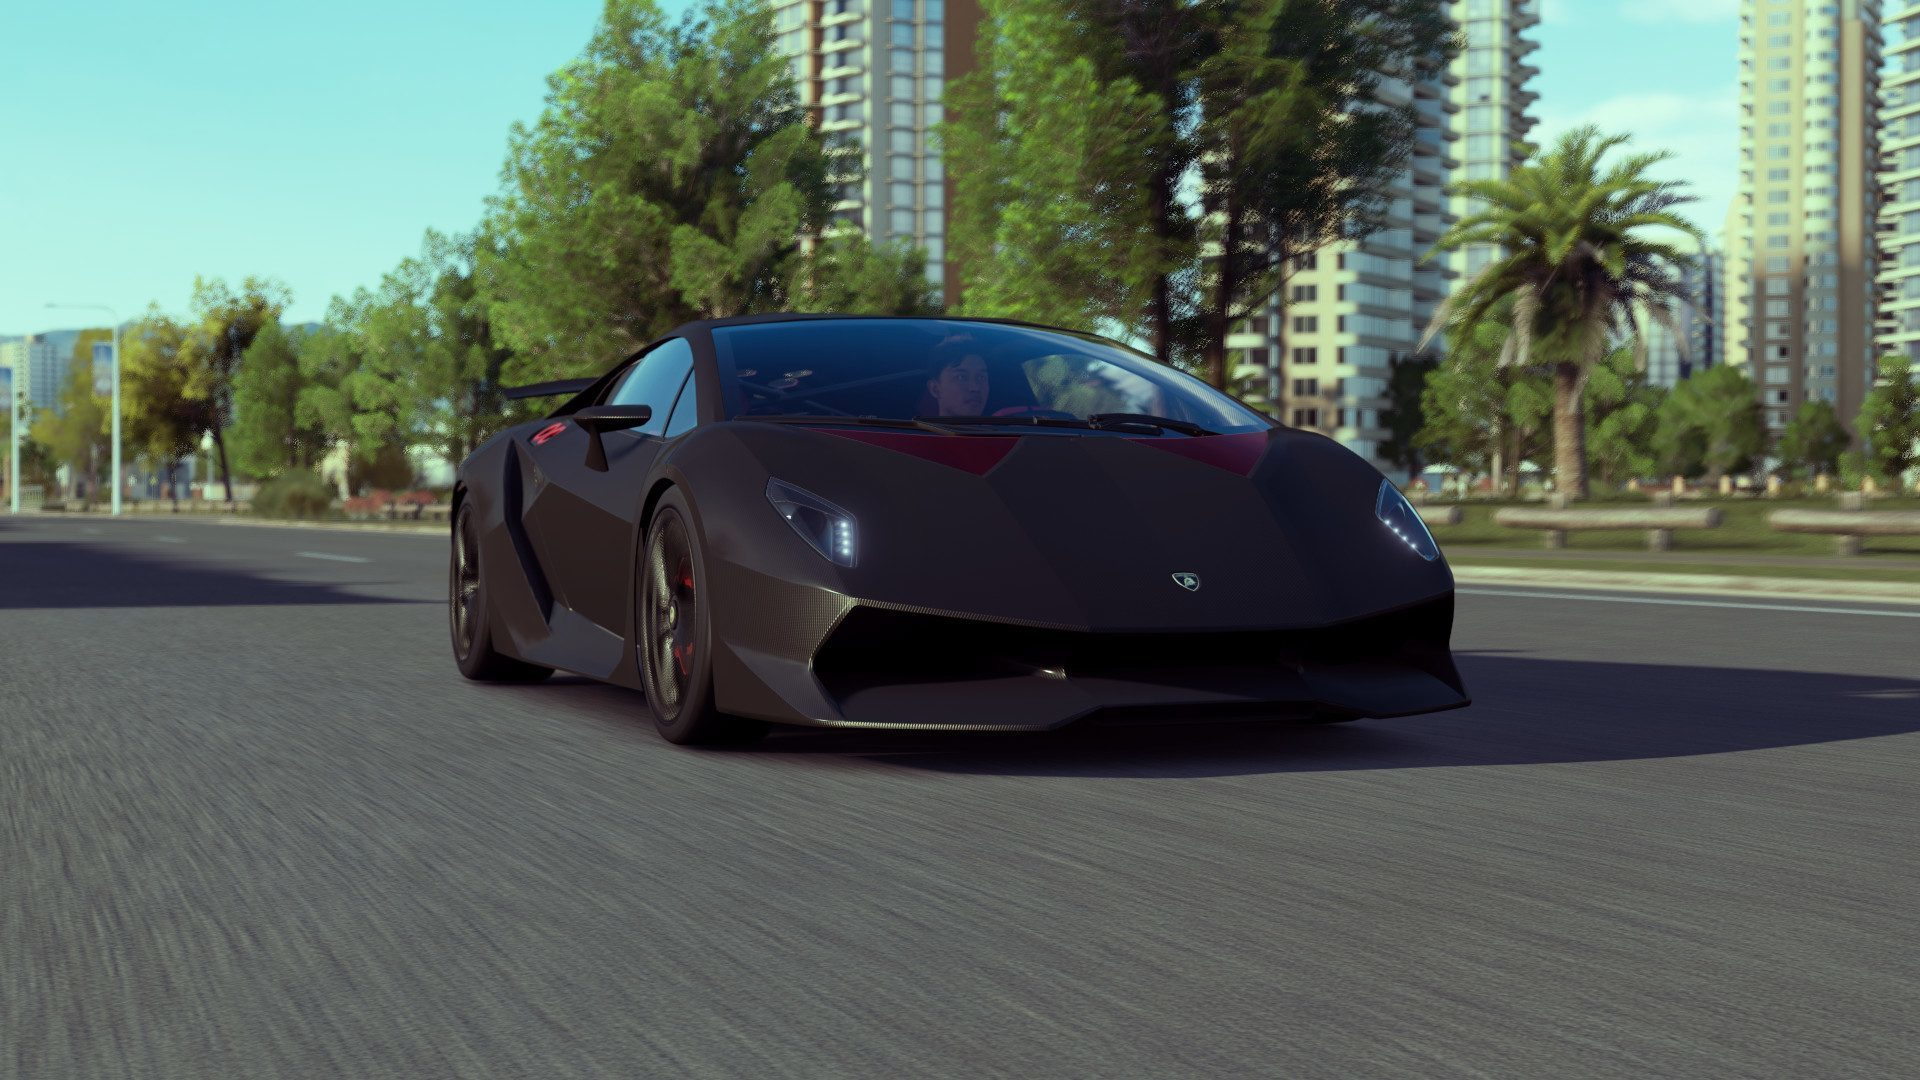 The Lamborghini Sesto Elemento Returns To Forza In A